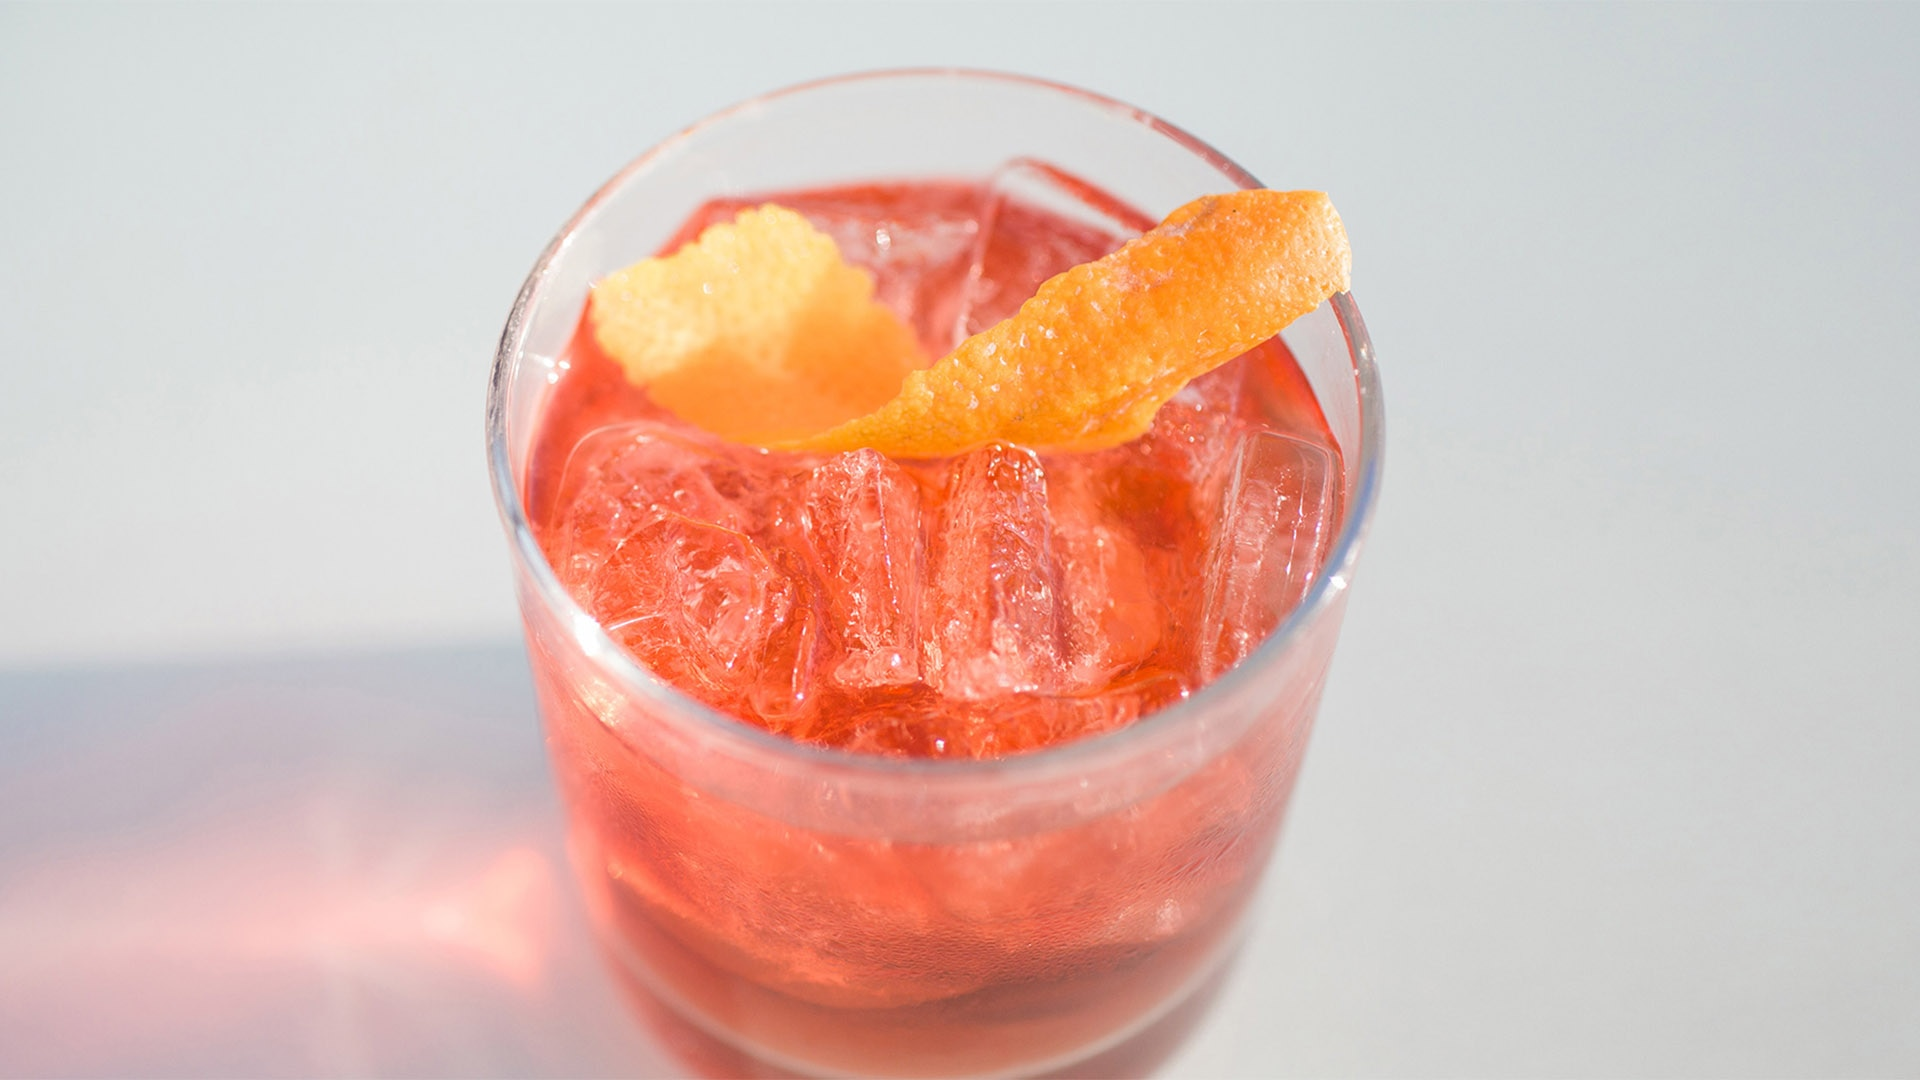 EDGE at Epicurean Hotel offers new drink deals and dips in